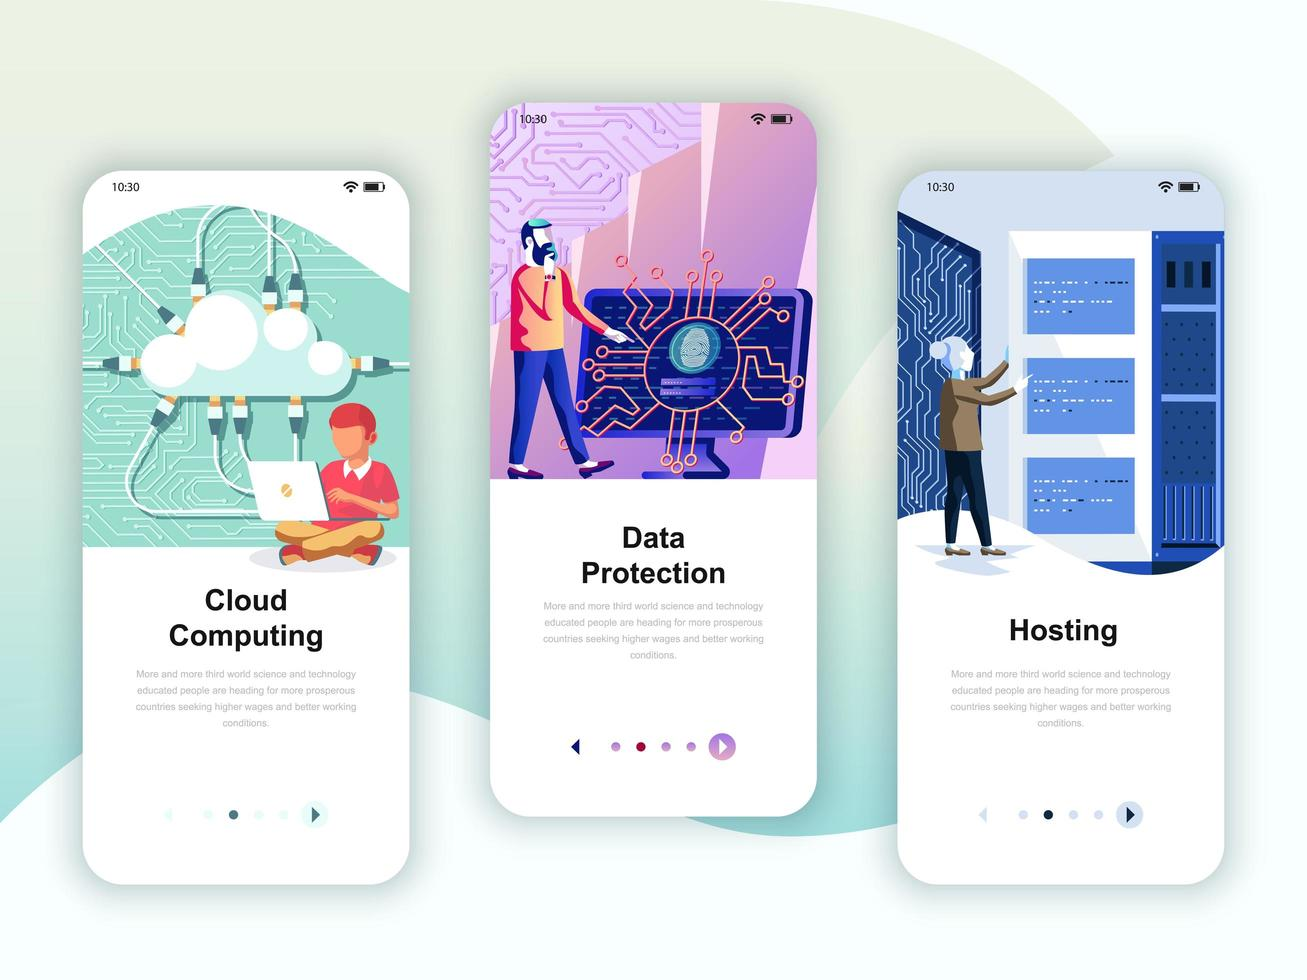 Set of onboarding screens user interface kit for Cloud Computing, Protection, Hosting, mobile app templates concept. Modern UX, UI screen for mobile or responsive web site. Vector illustration.